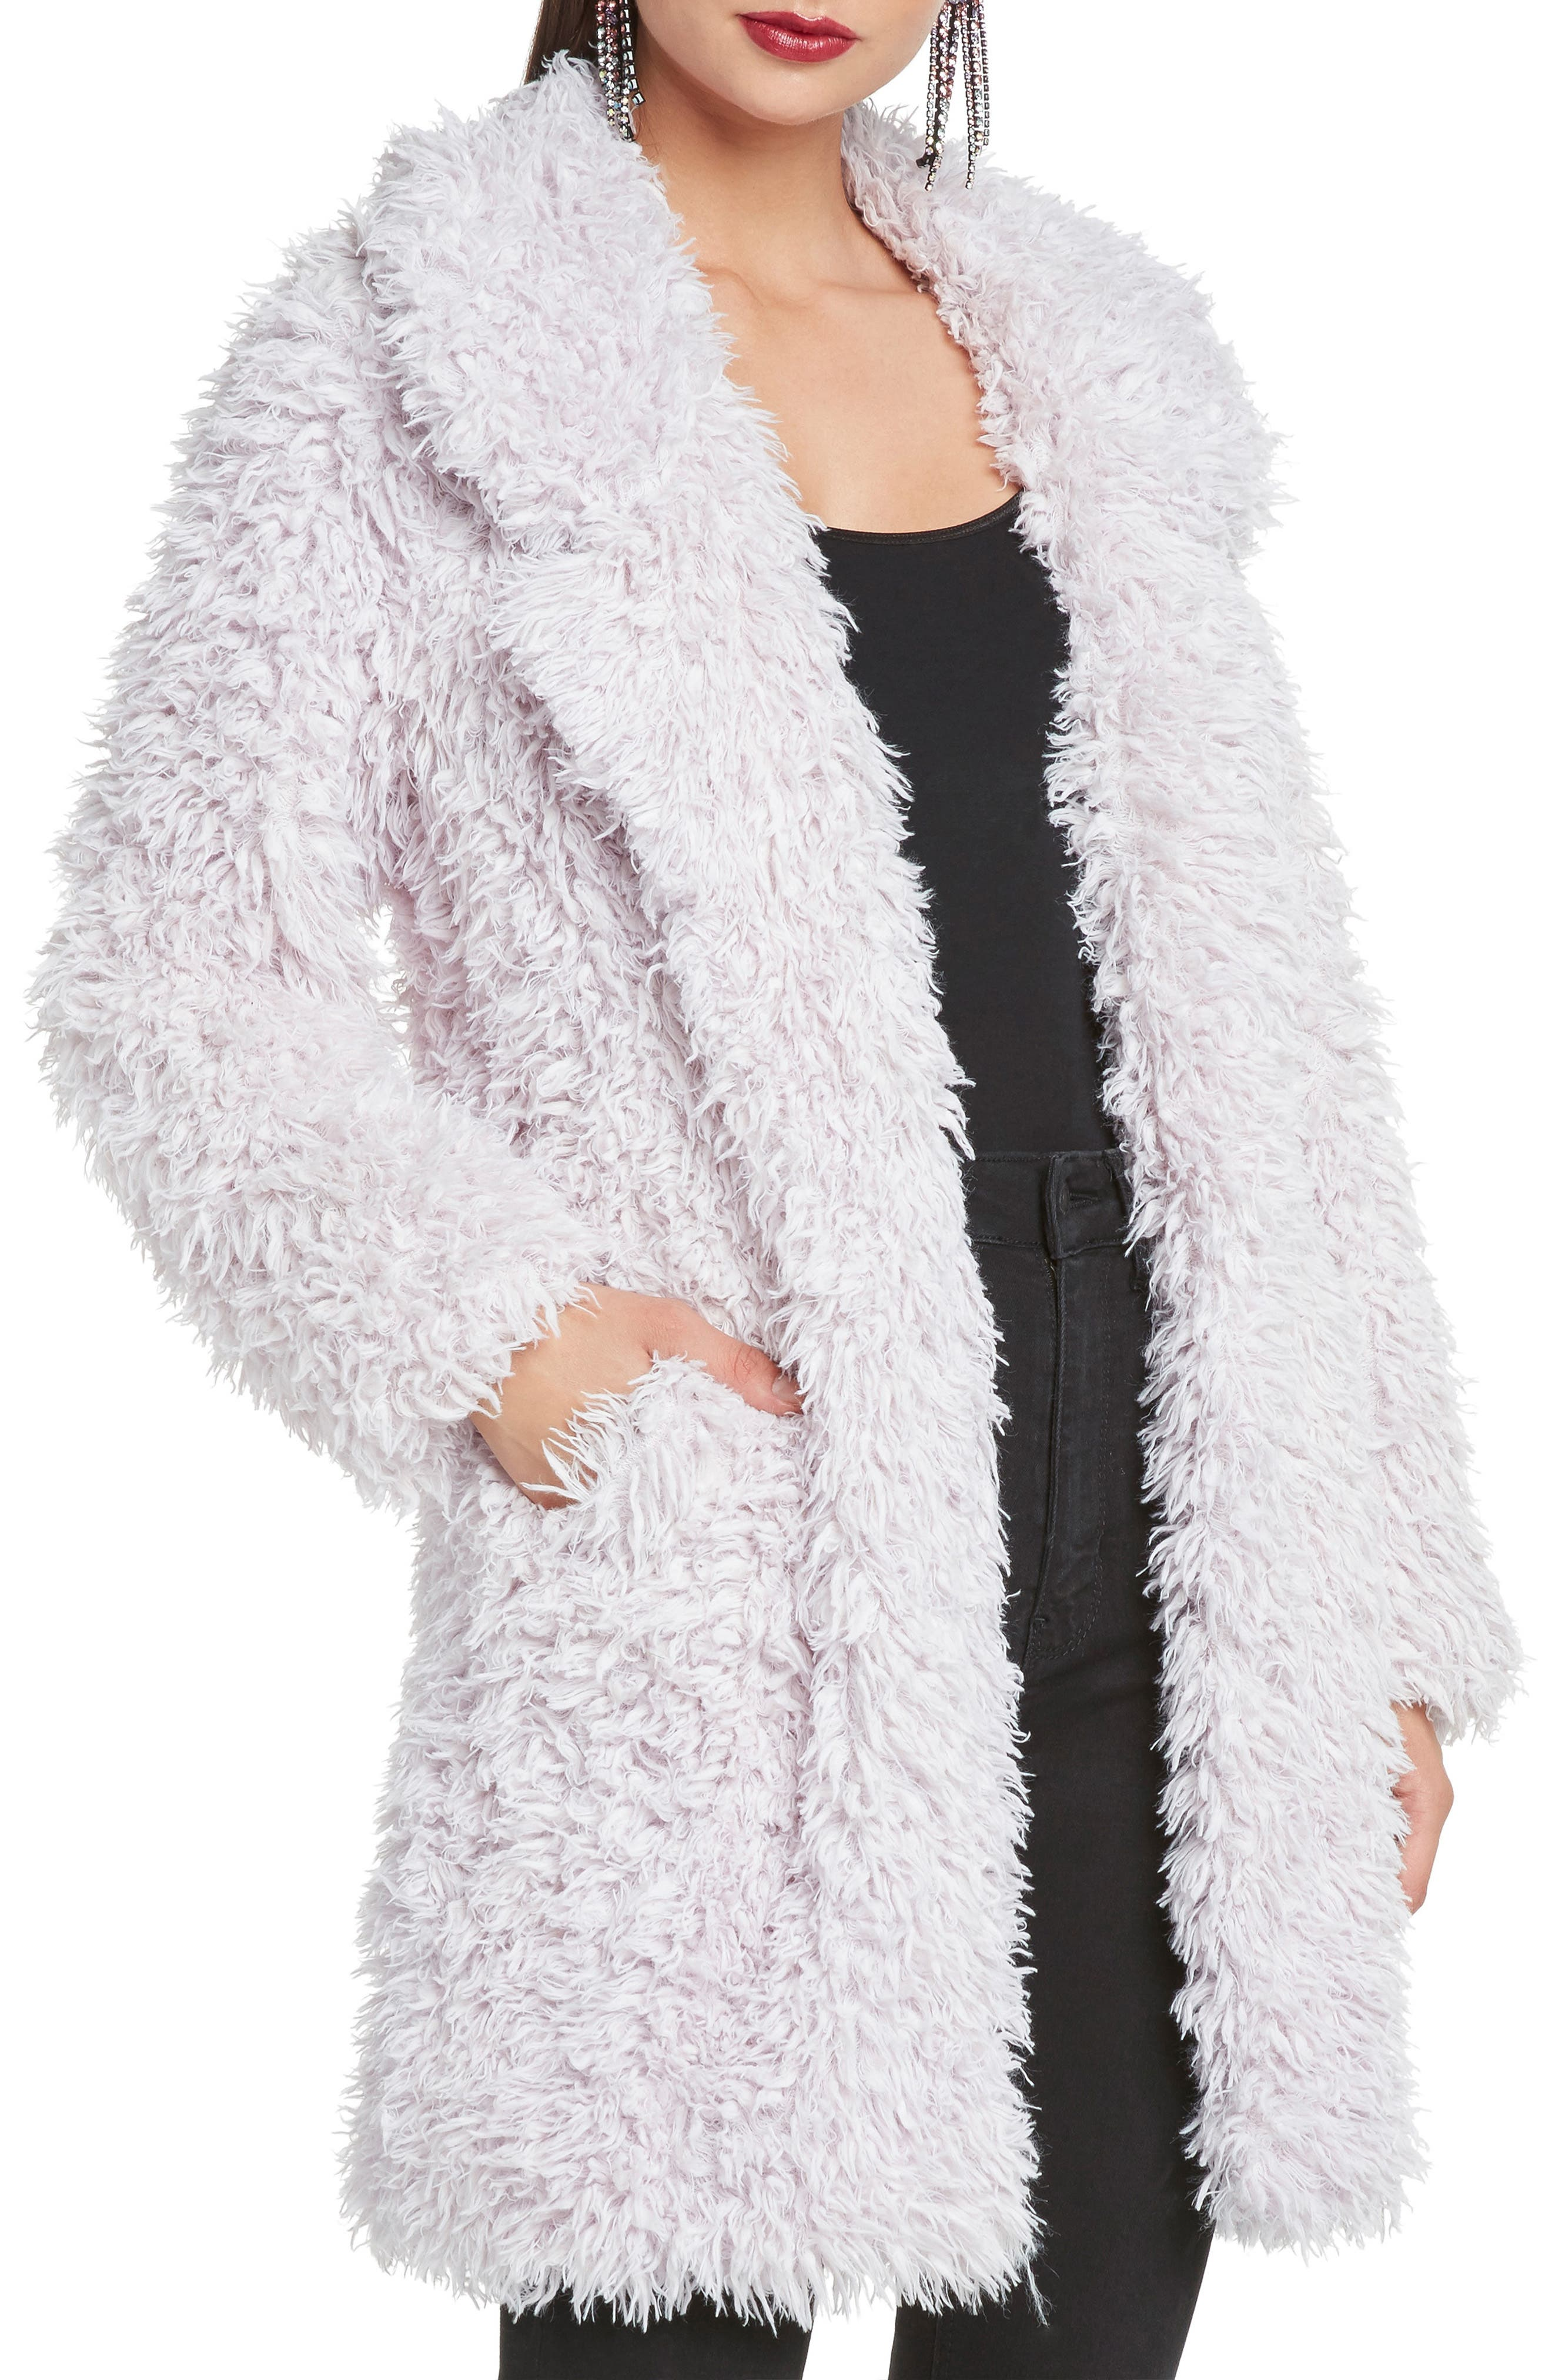 WILLOW & CLAY Faux Fur Coat in White